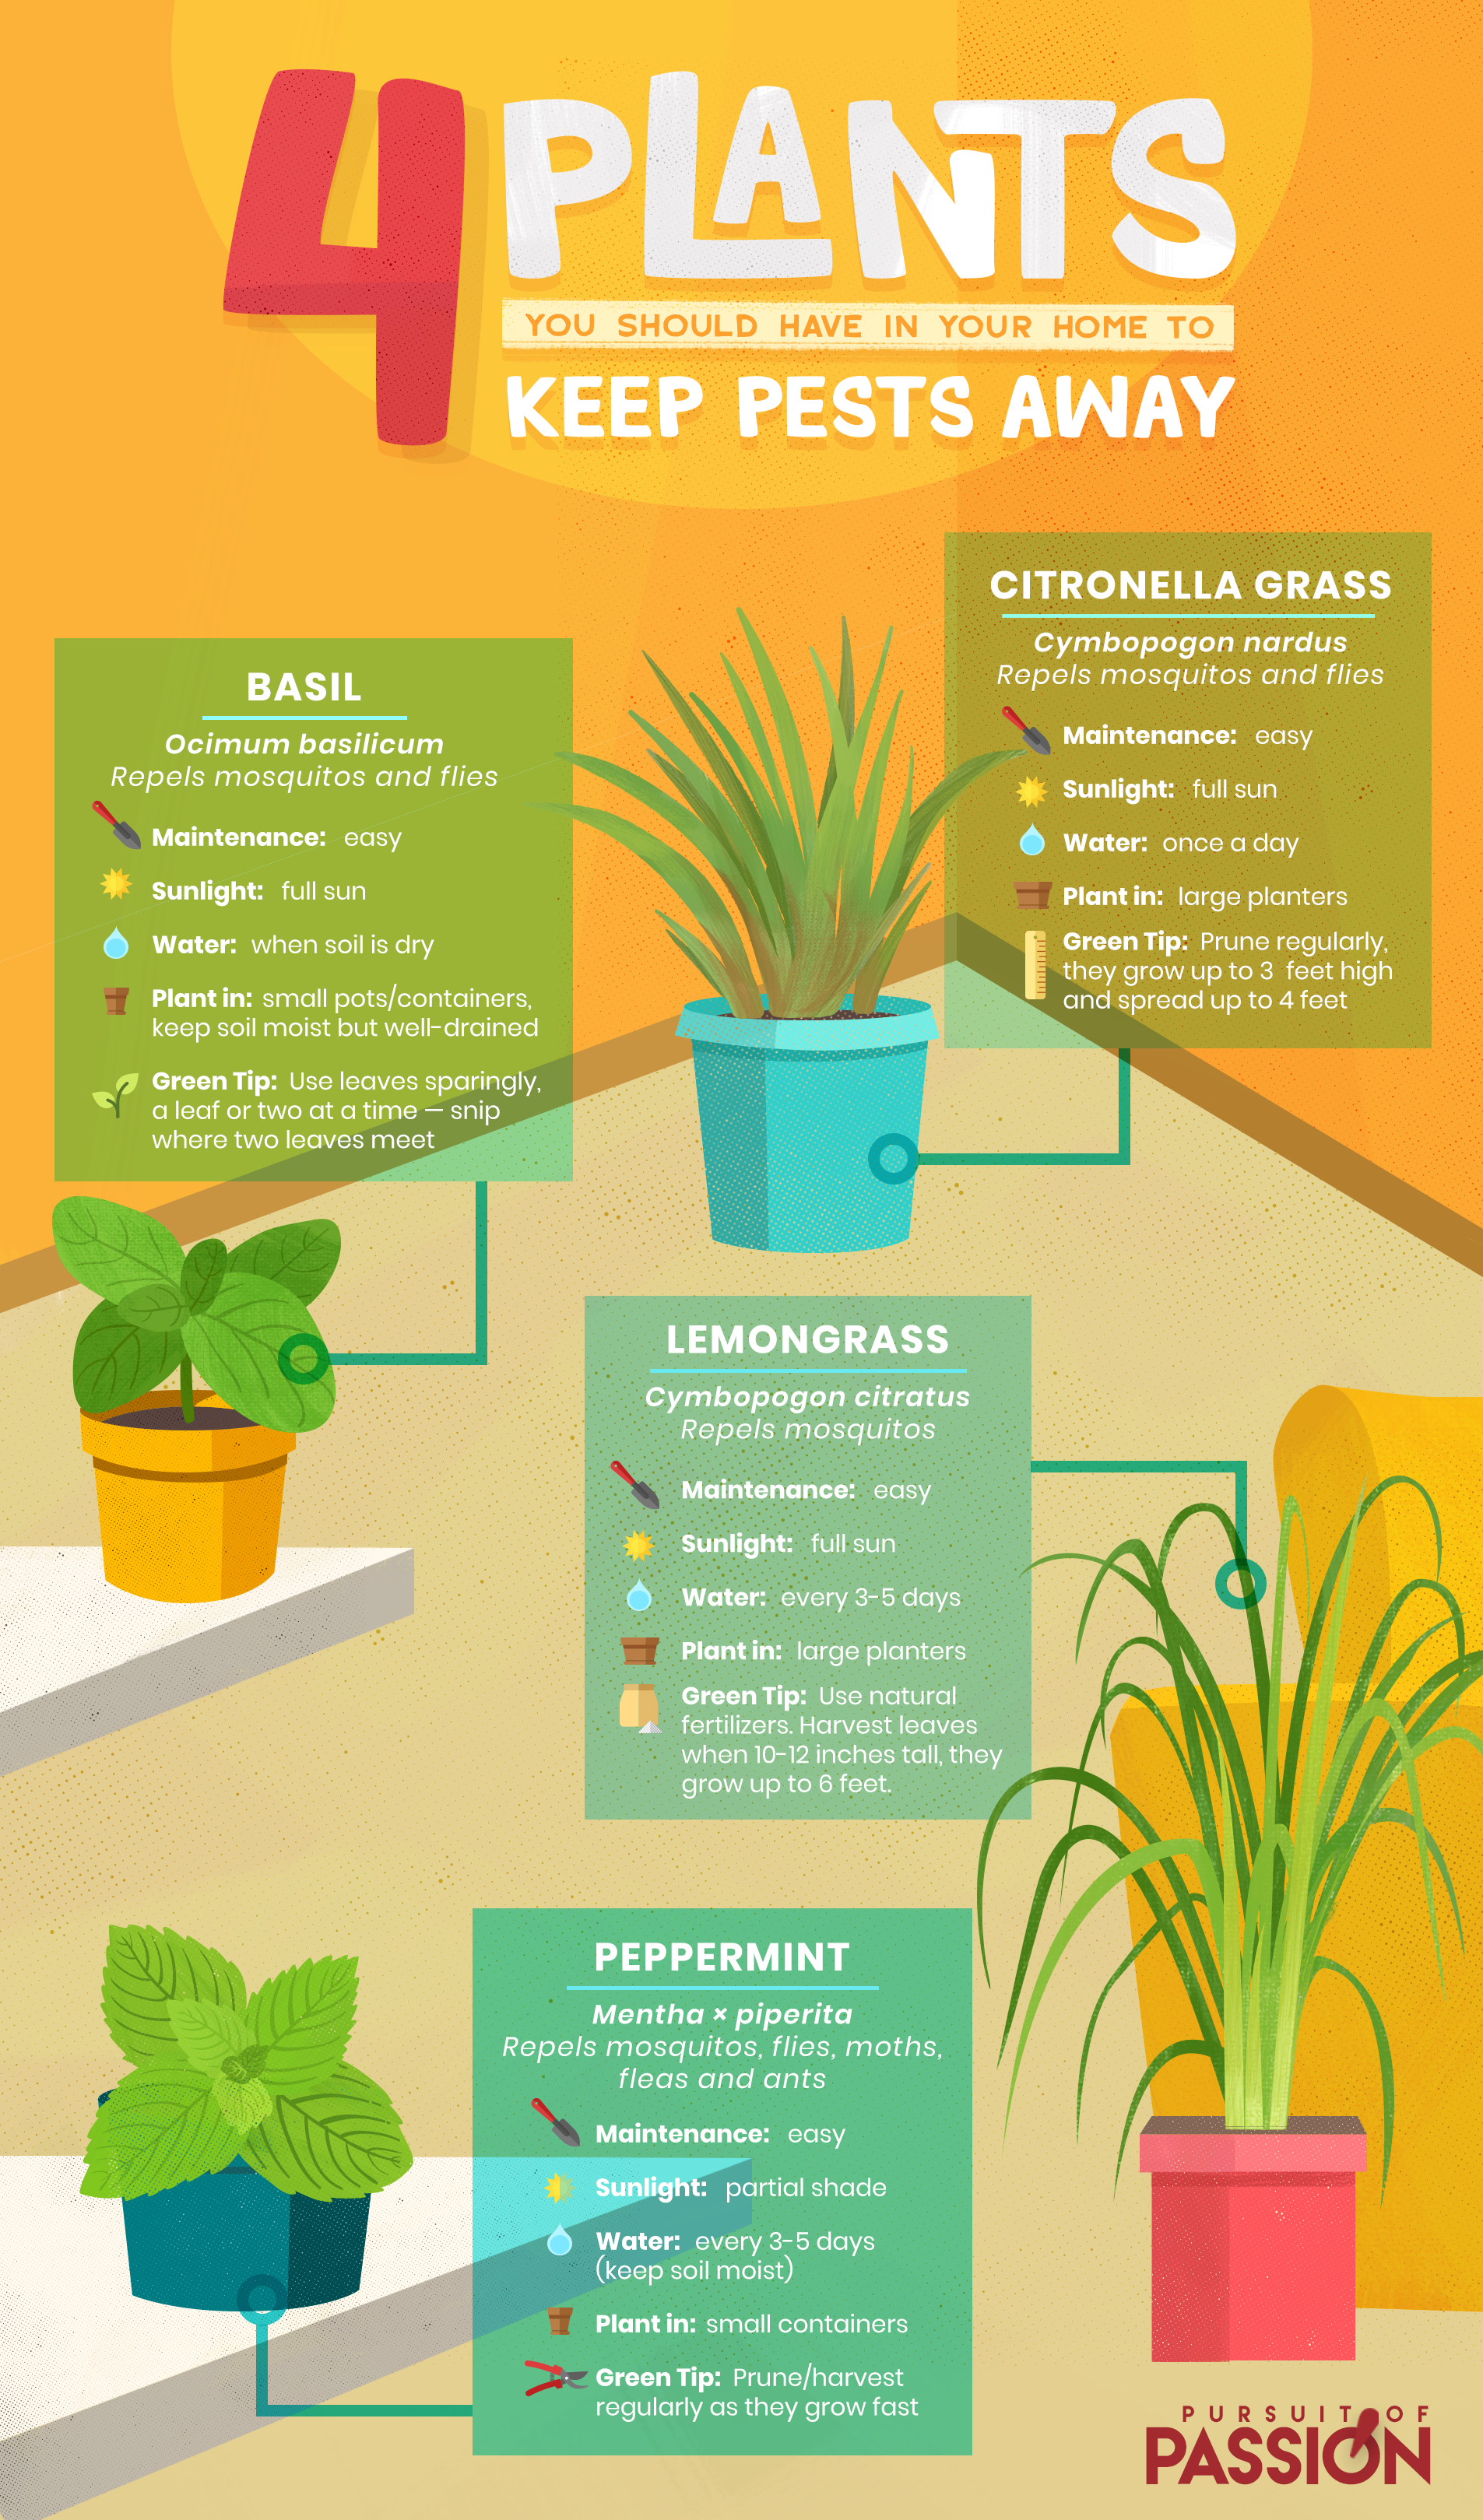 4 Plants You Should Have in Your Home to Keep Pests Away - Infographic